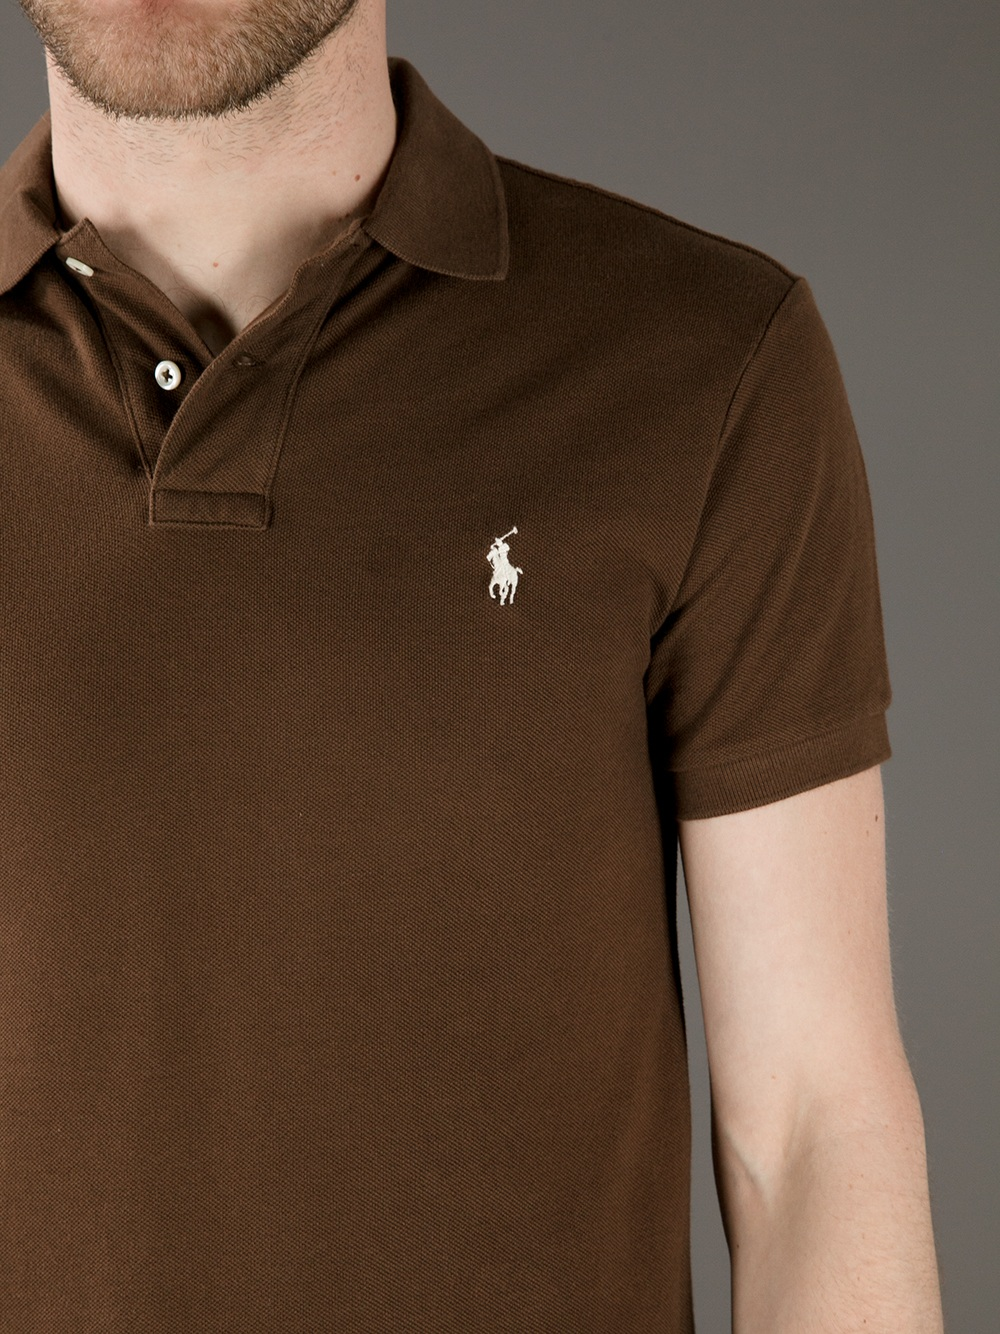 Polo Clothing For Men